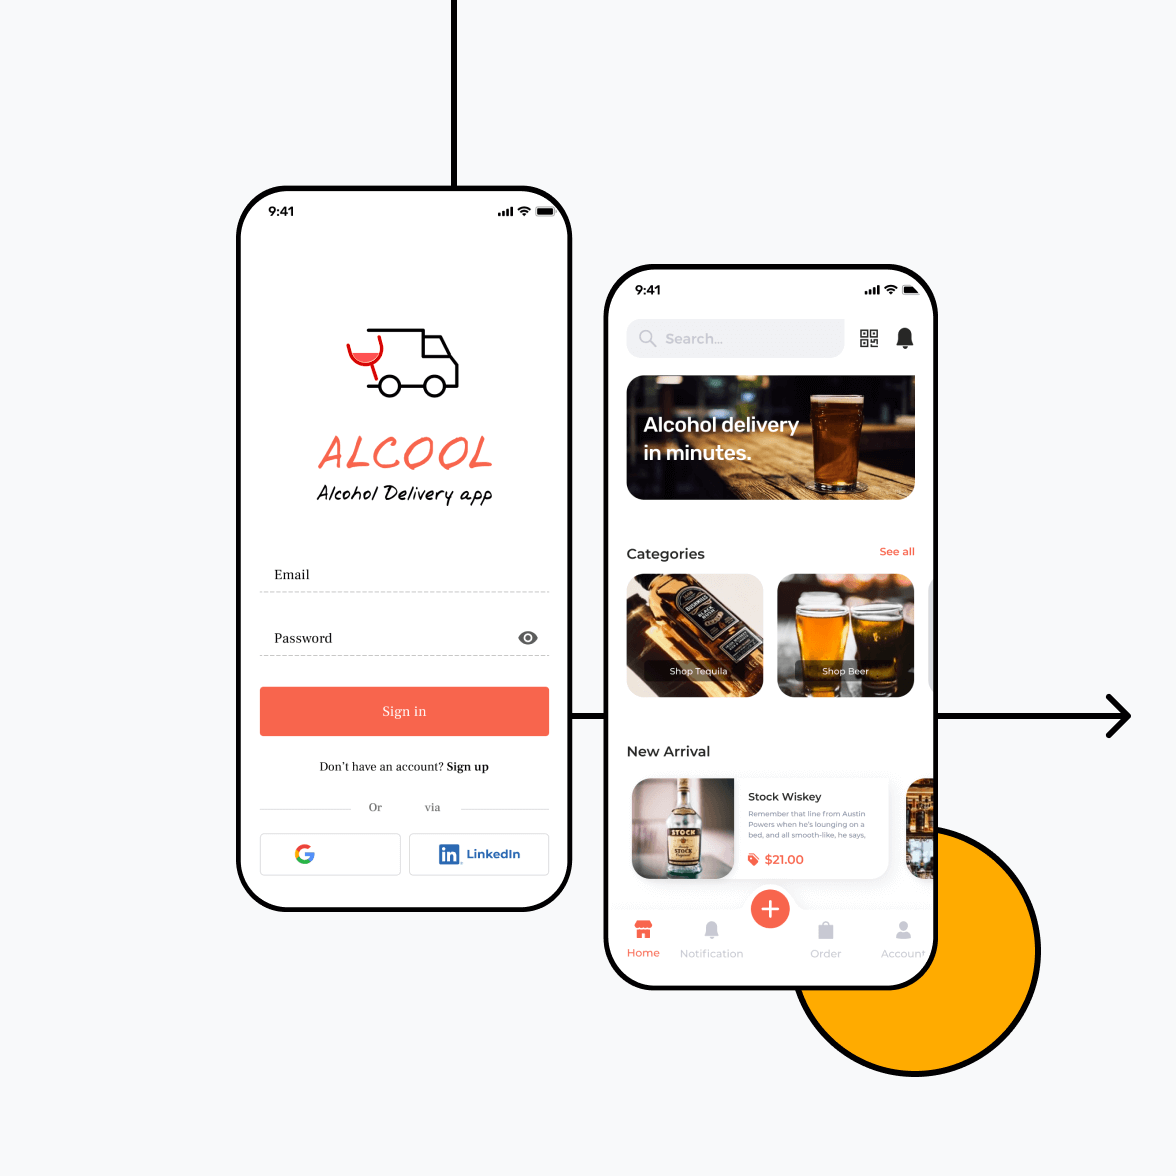 Liquor delivery app with home and login screen